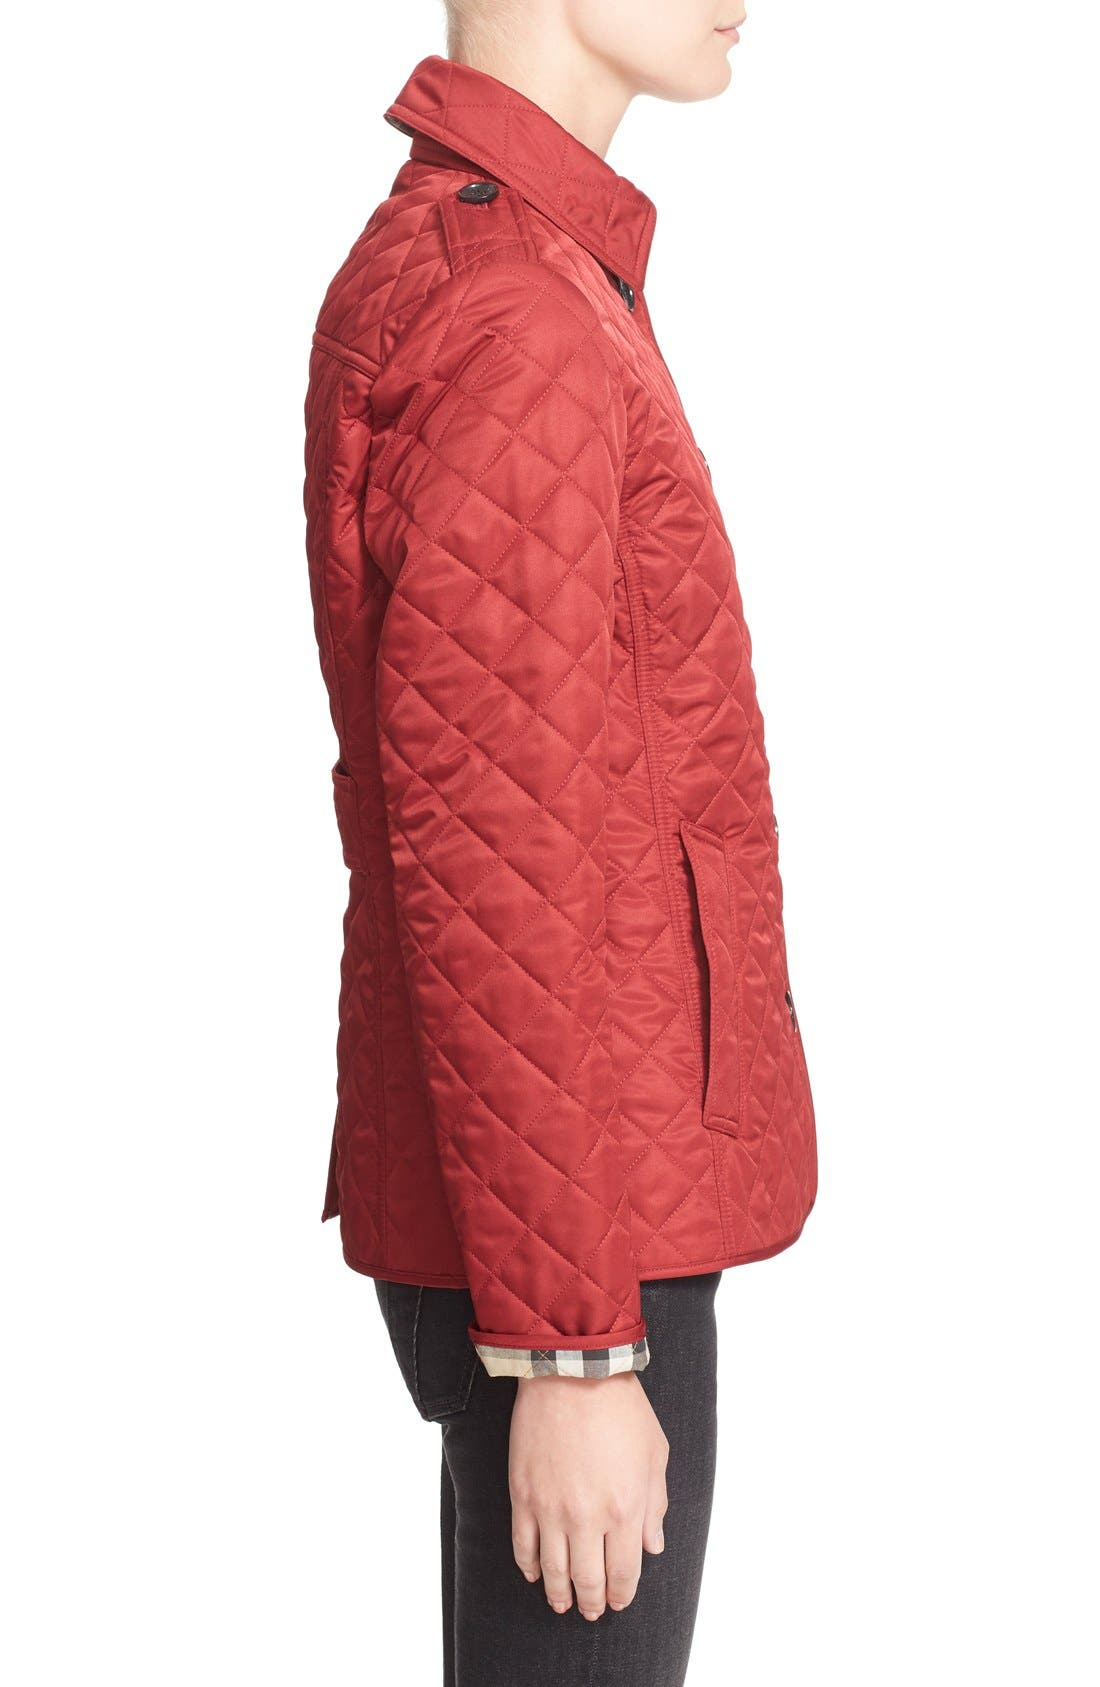 Ashurst Quilted Jacket,                             Alternate thumbnail 7, color,                             PARADE RED